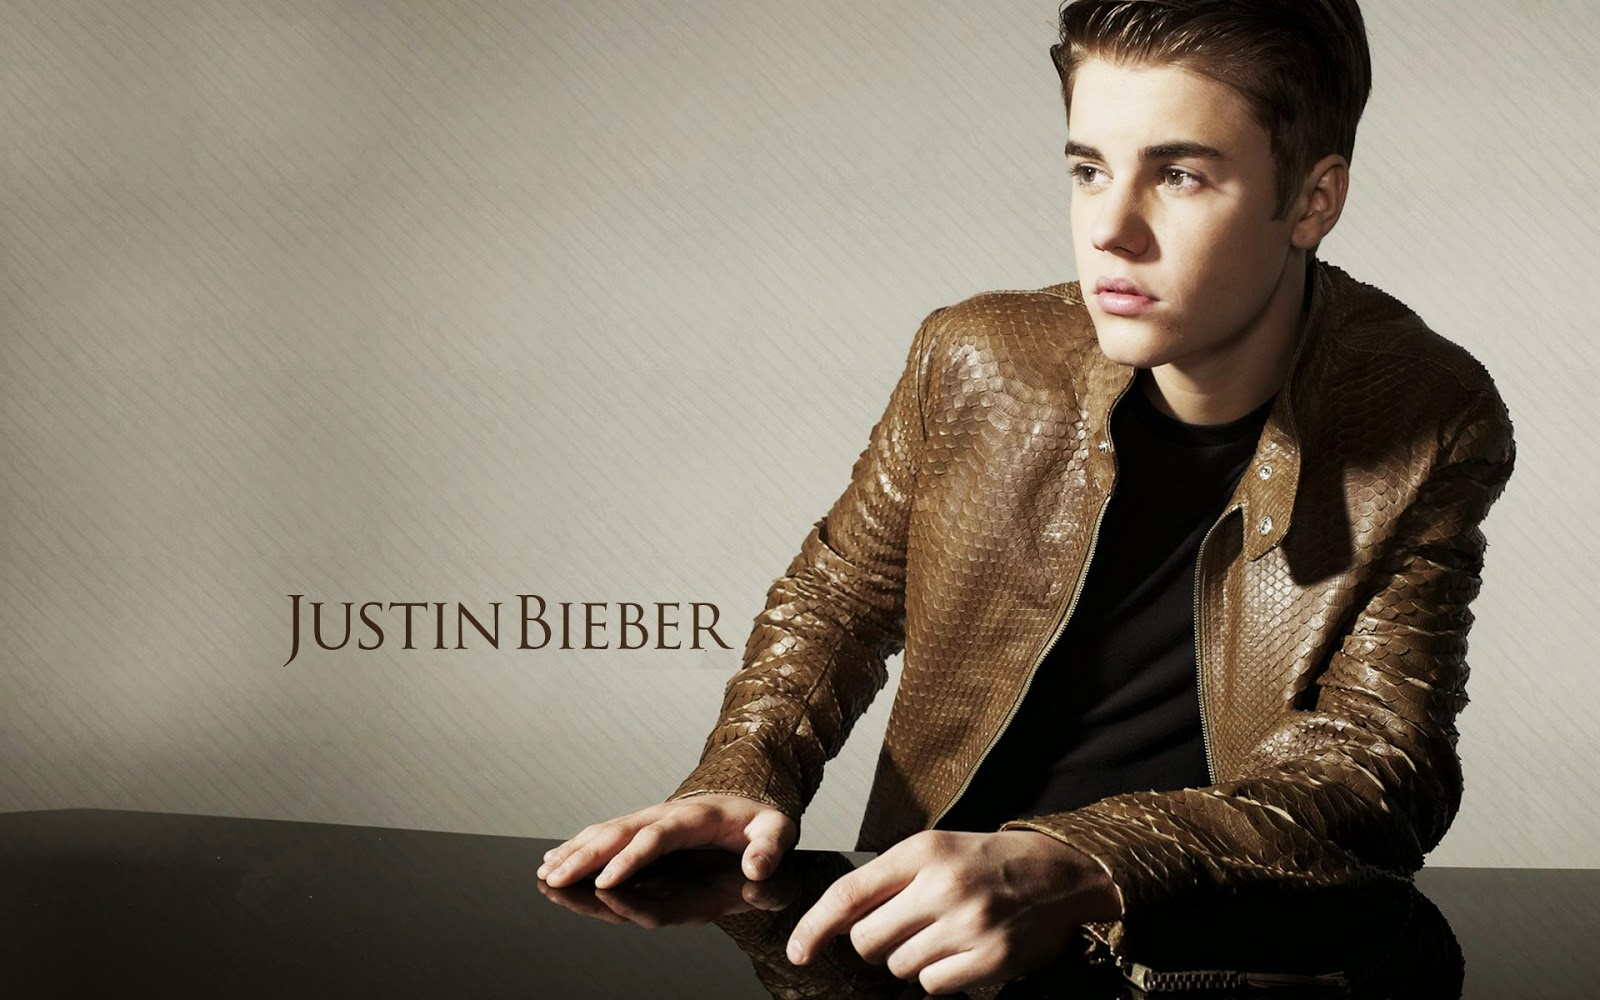 Justin Biber Photo Dwnld: 1 Wallpaper Picture Photo Quotes: Justin Bieber HD